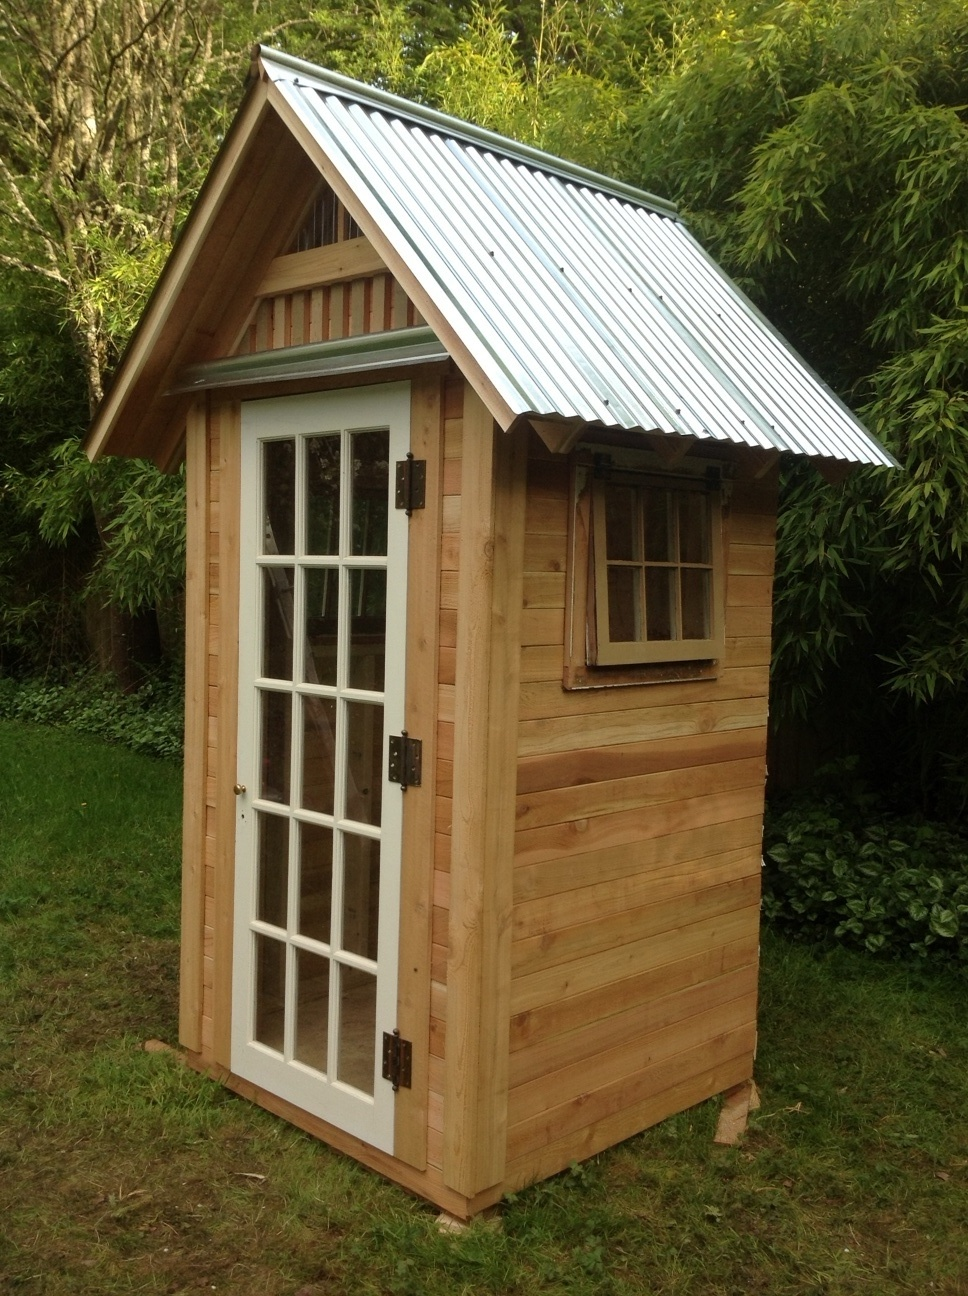 Beautiful Garden Shed Made From Recycled Materials   Victorian .